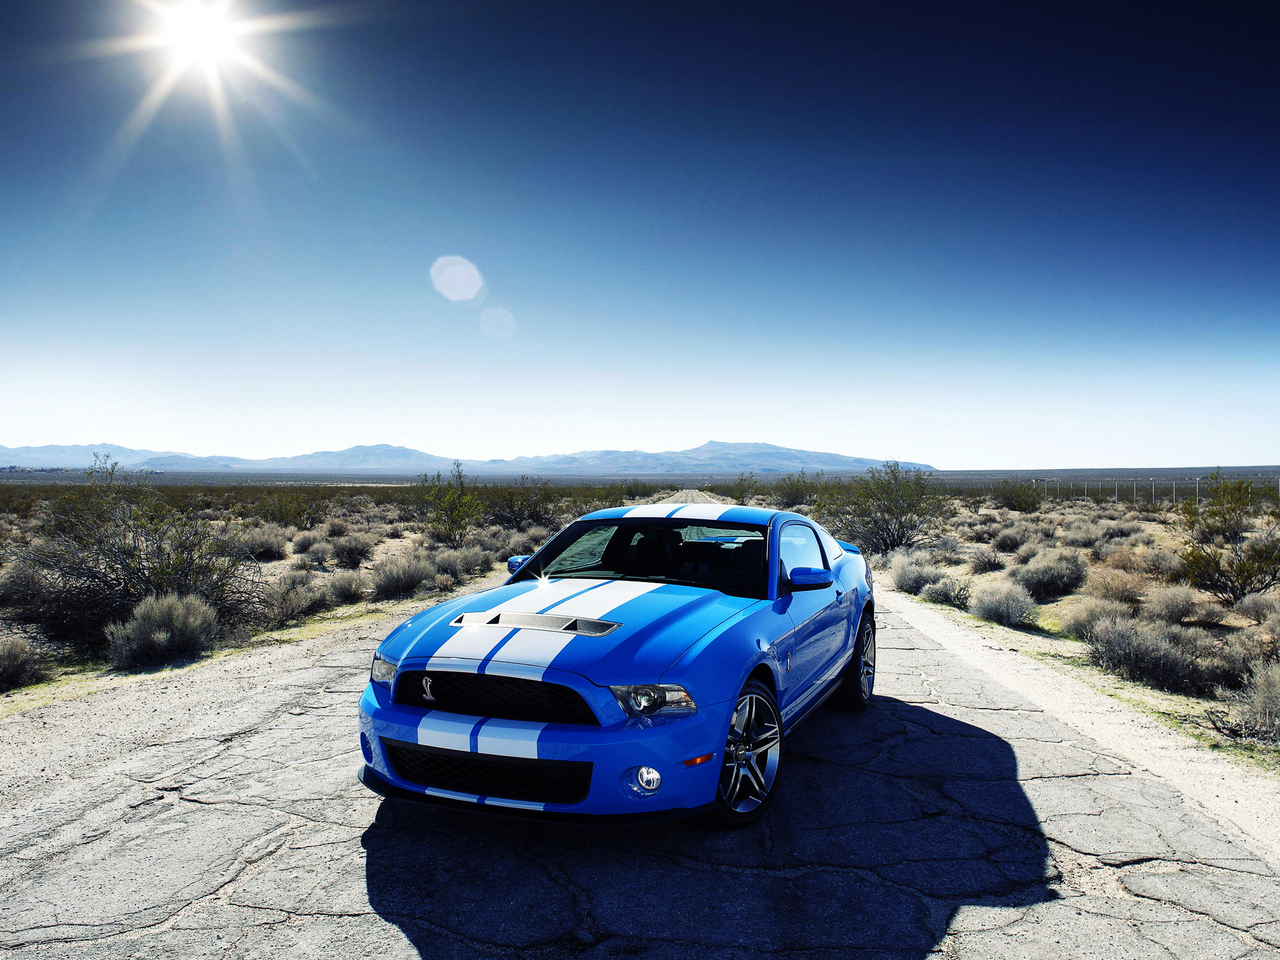 Download mobile wallpaper Transport, Auto, Ford, Mustang for free.